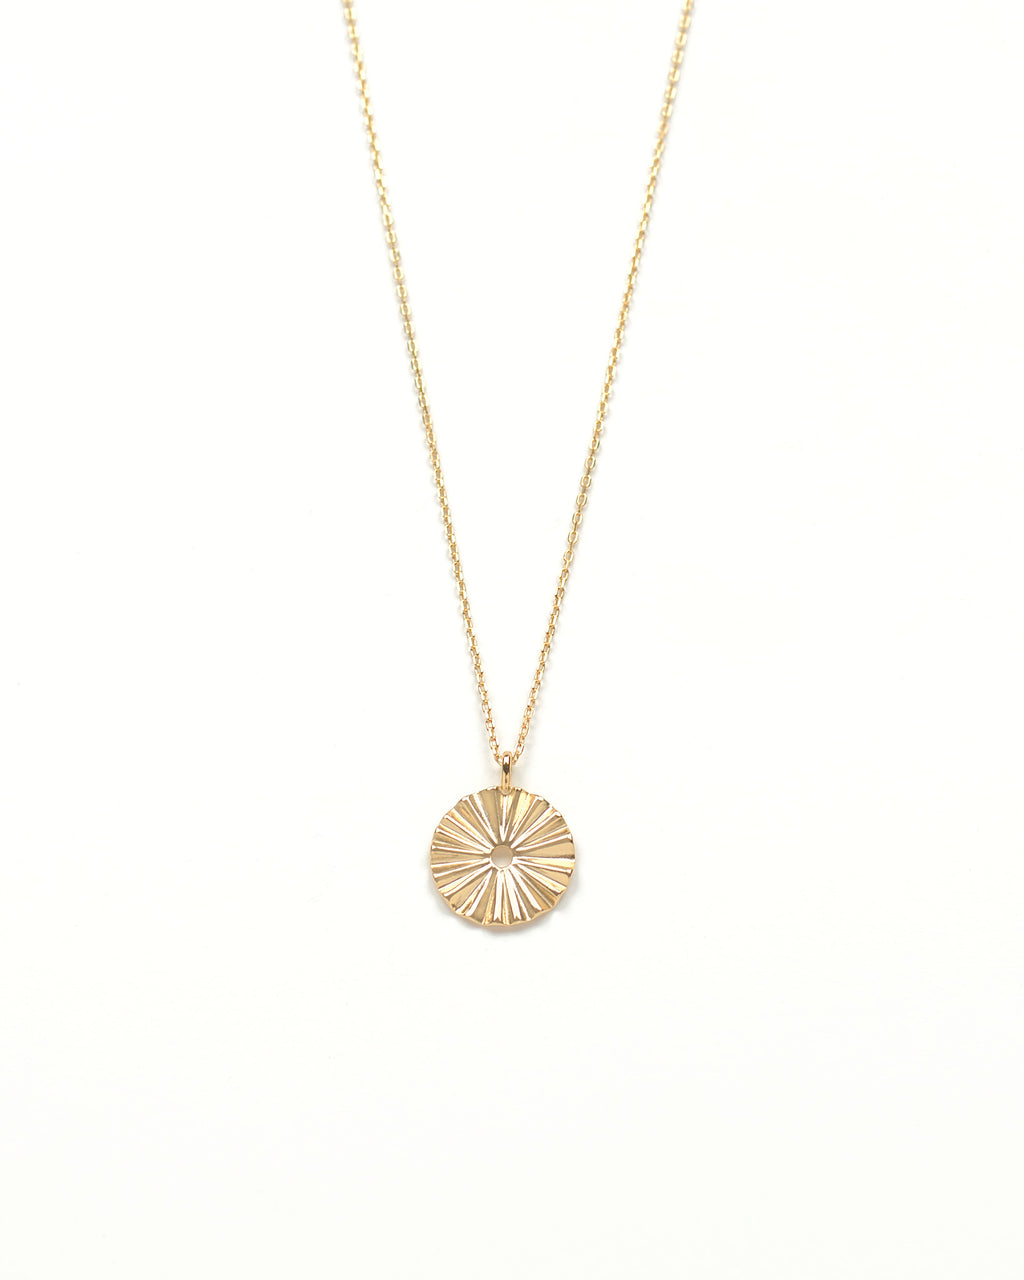 18k gold plated sterling silver sunshine medallion necklace